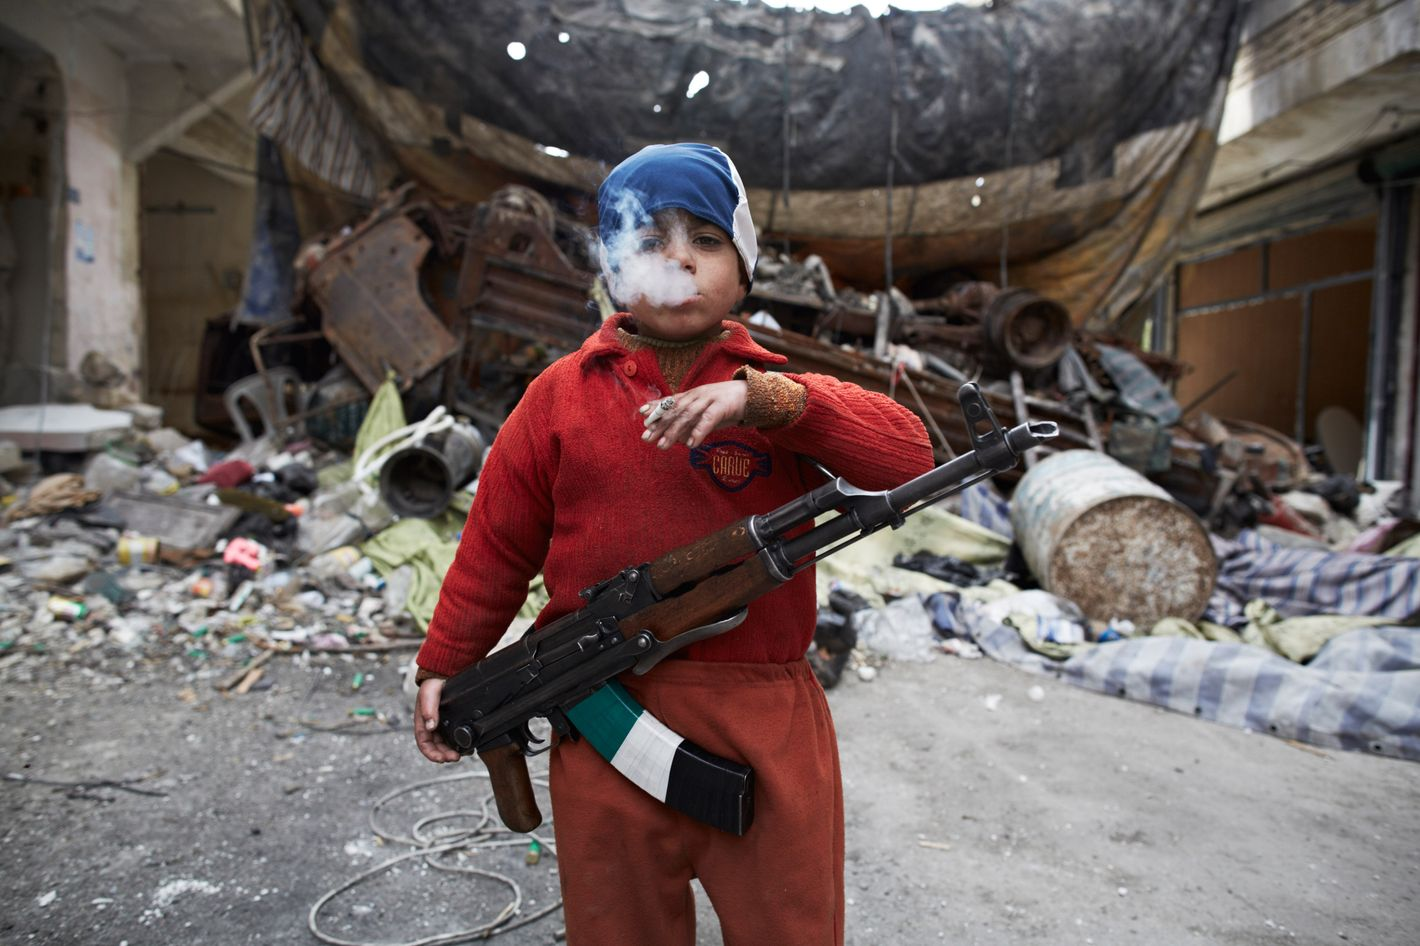 Ahmed, the 7 year old son of a FSA fighter, stands in front of a barricade, were he assits his FSA comrades in the neighborhood of Salahadeen, one of Aleppo's front lines. Aleppo, Syria, on March 27, 2013.